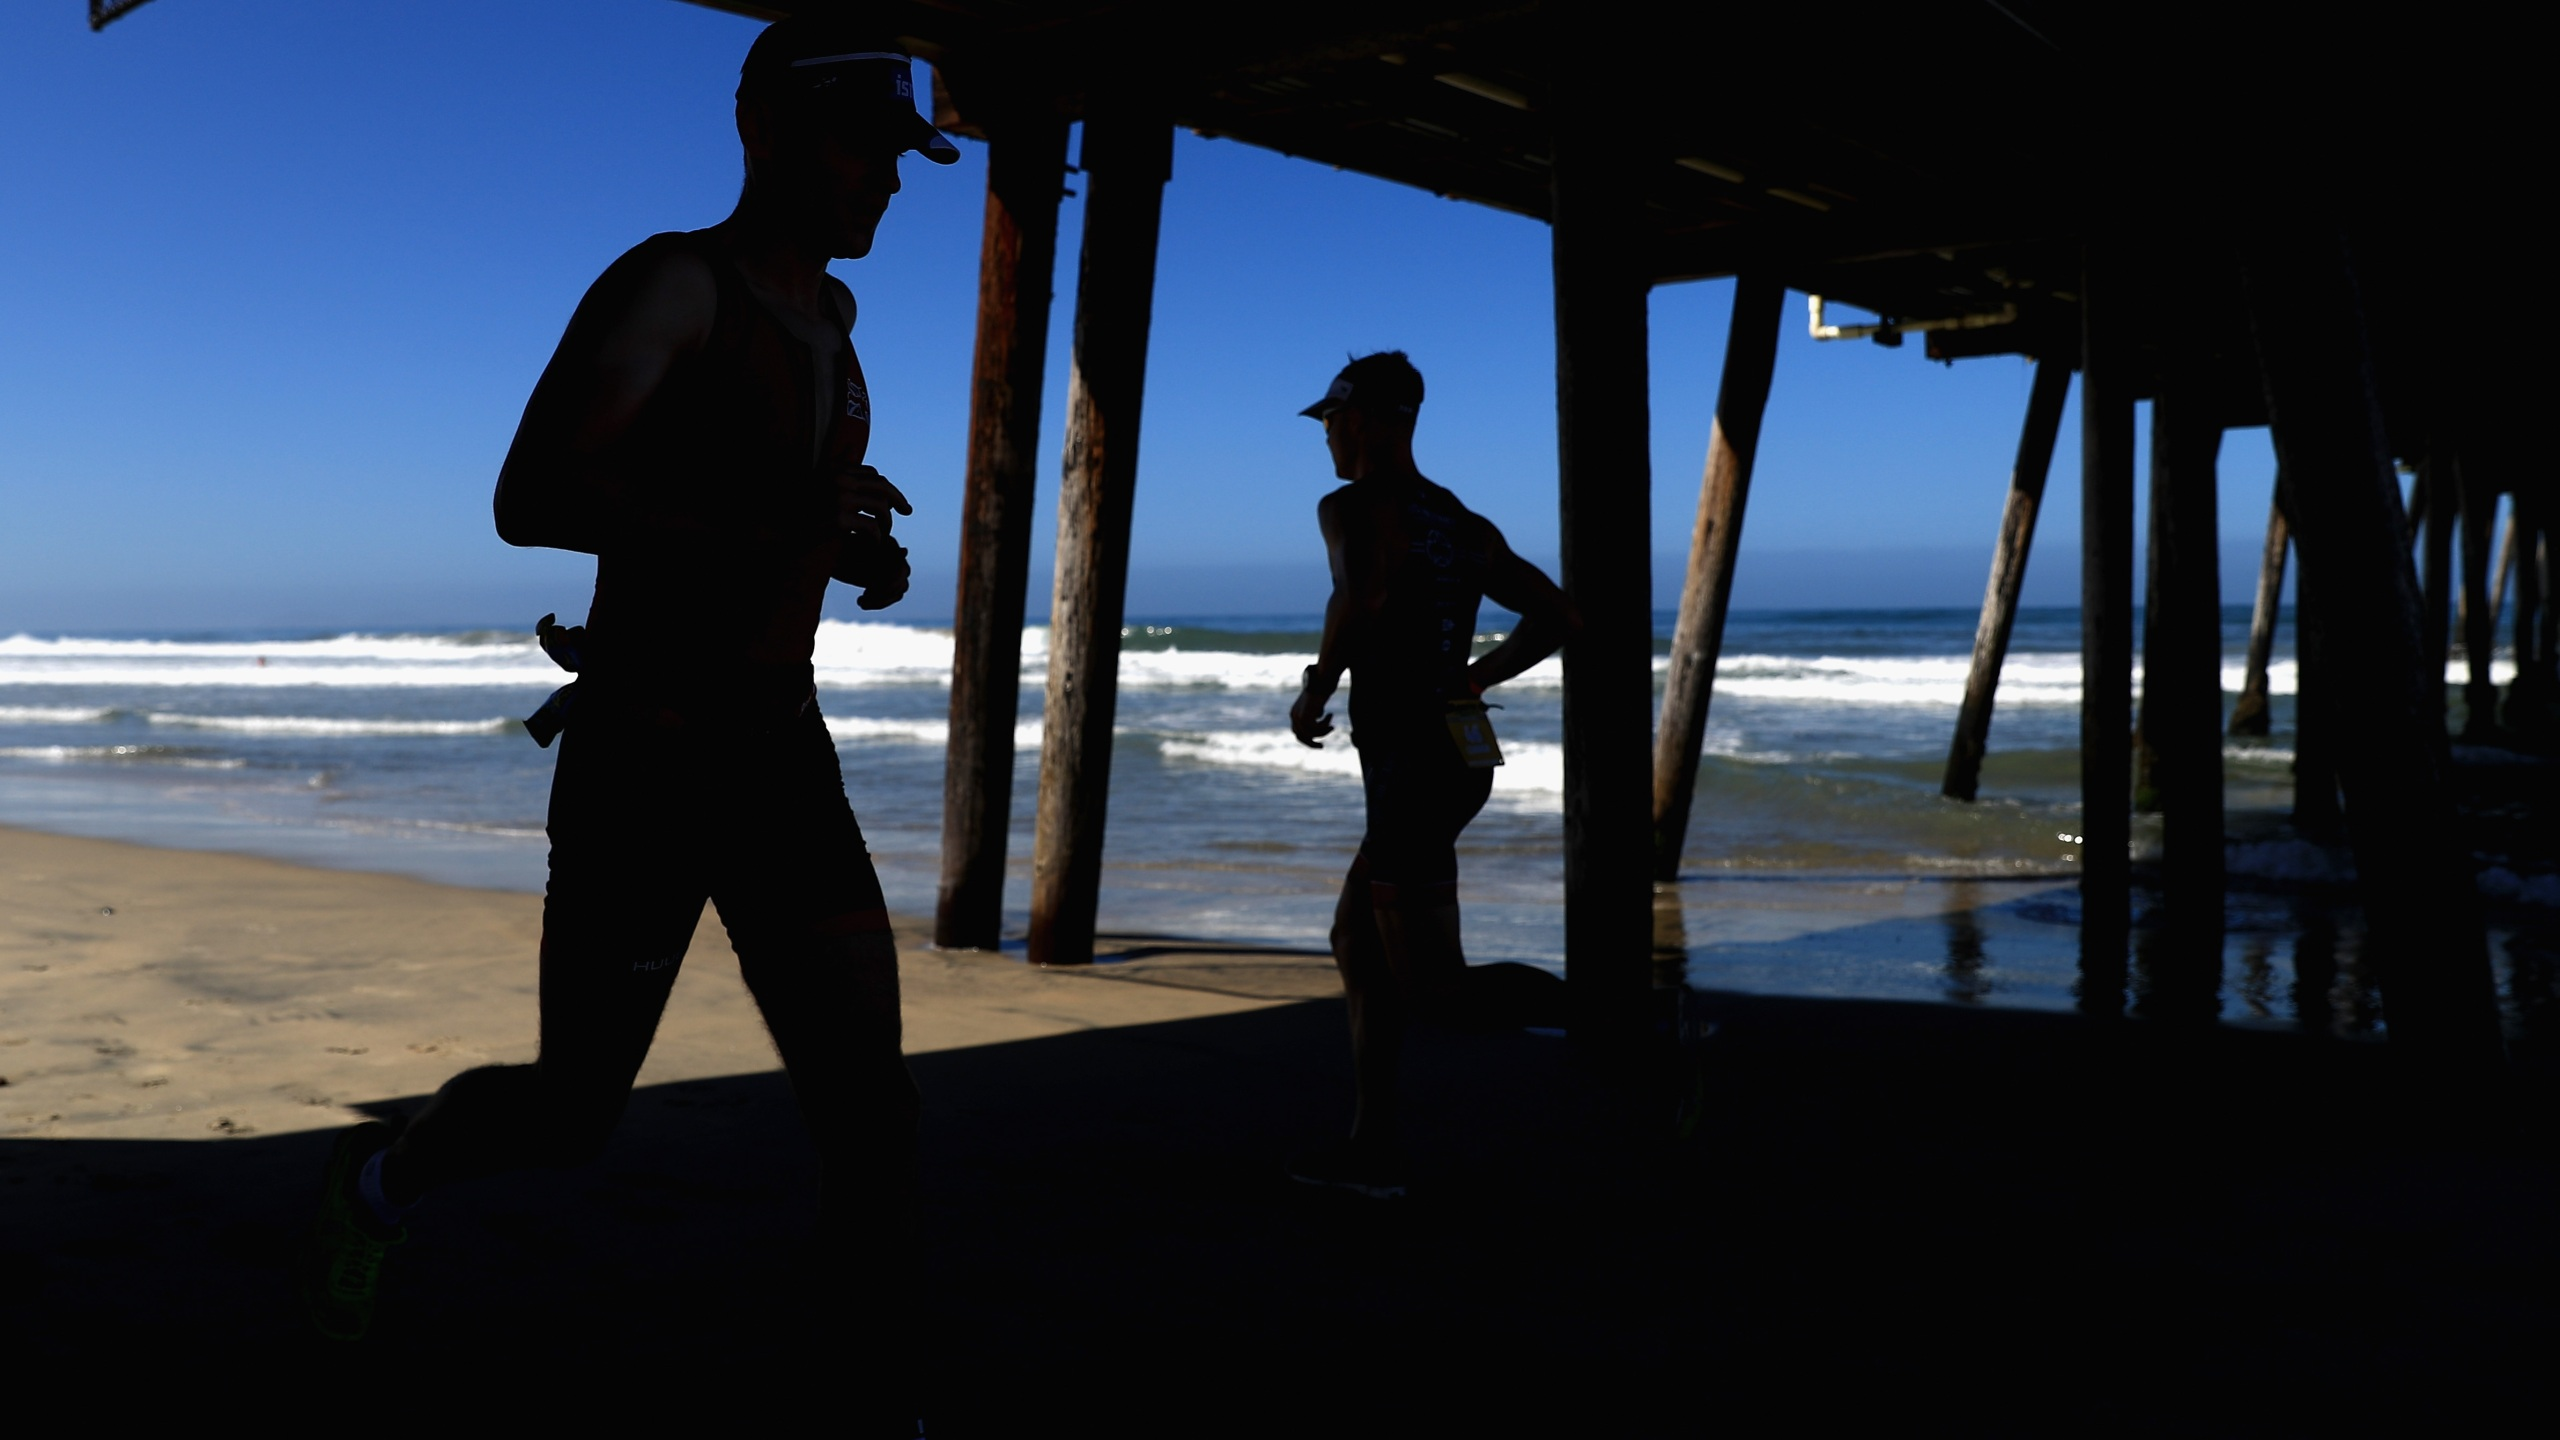 Competitors run under the Imperial Beach pier during the run portion of the IRONMAN 70.3 Superfrog on Sept. 16, 2018 in Imperial Beach, California. (Sean M. Haffey/Getty Images for IRONMAN)